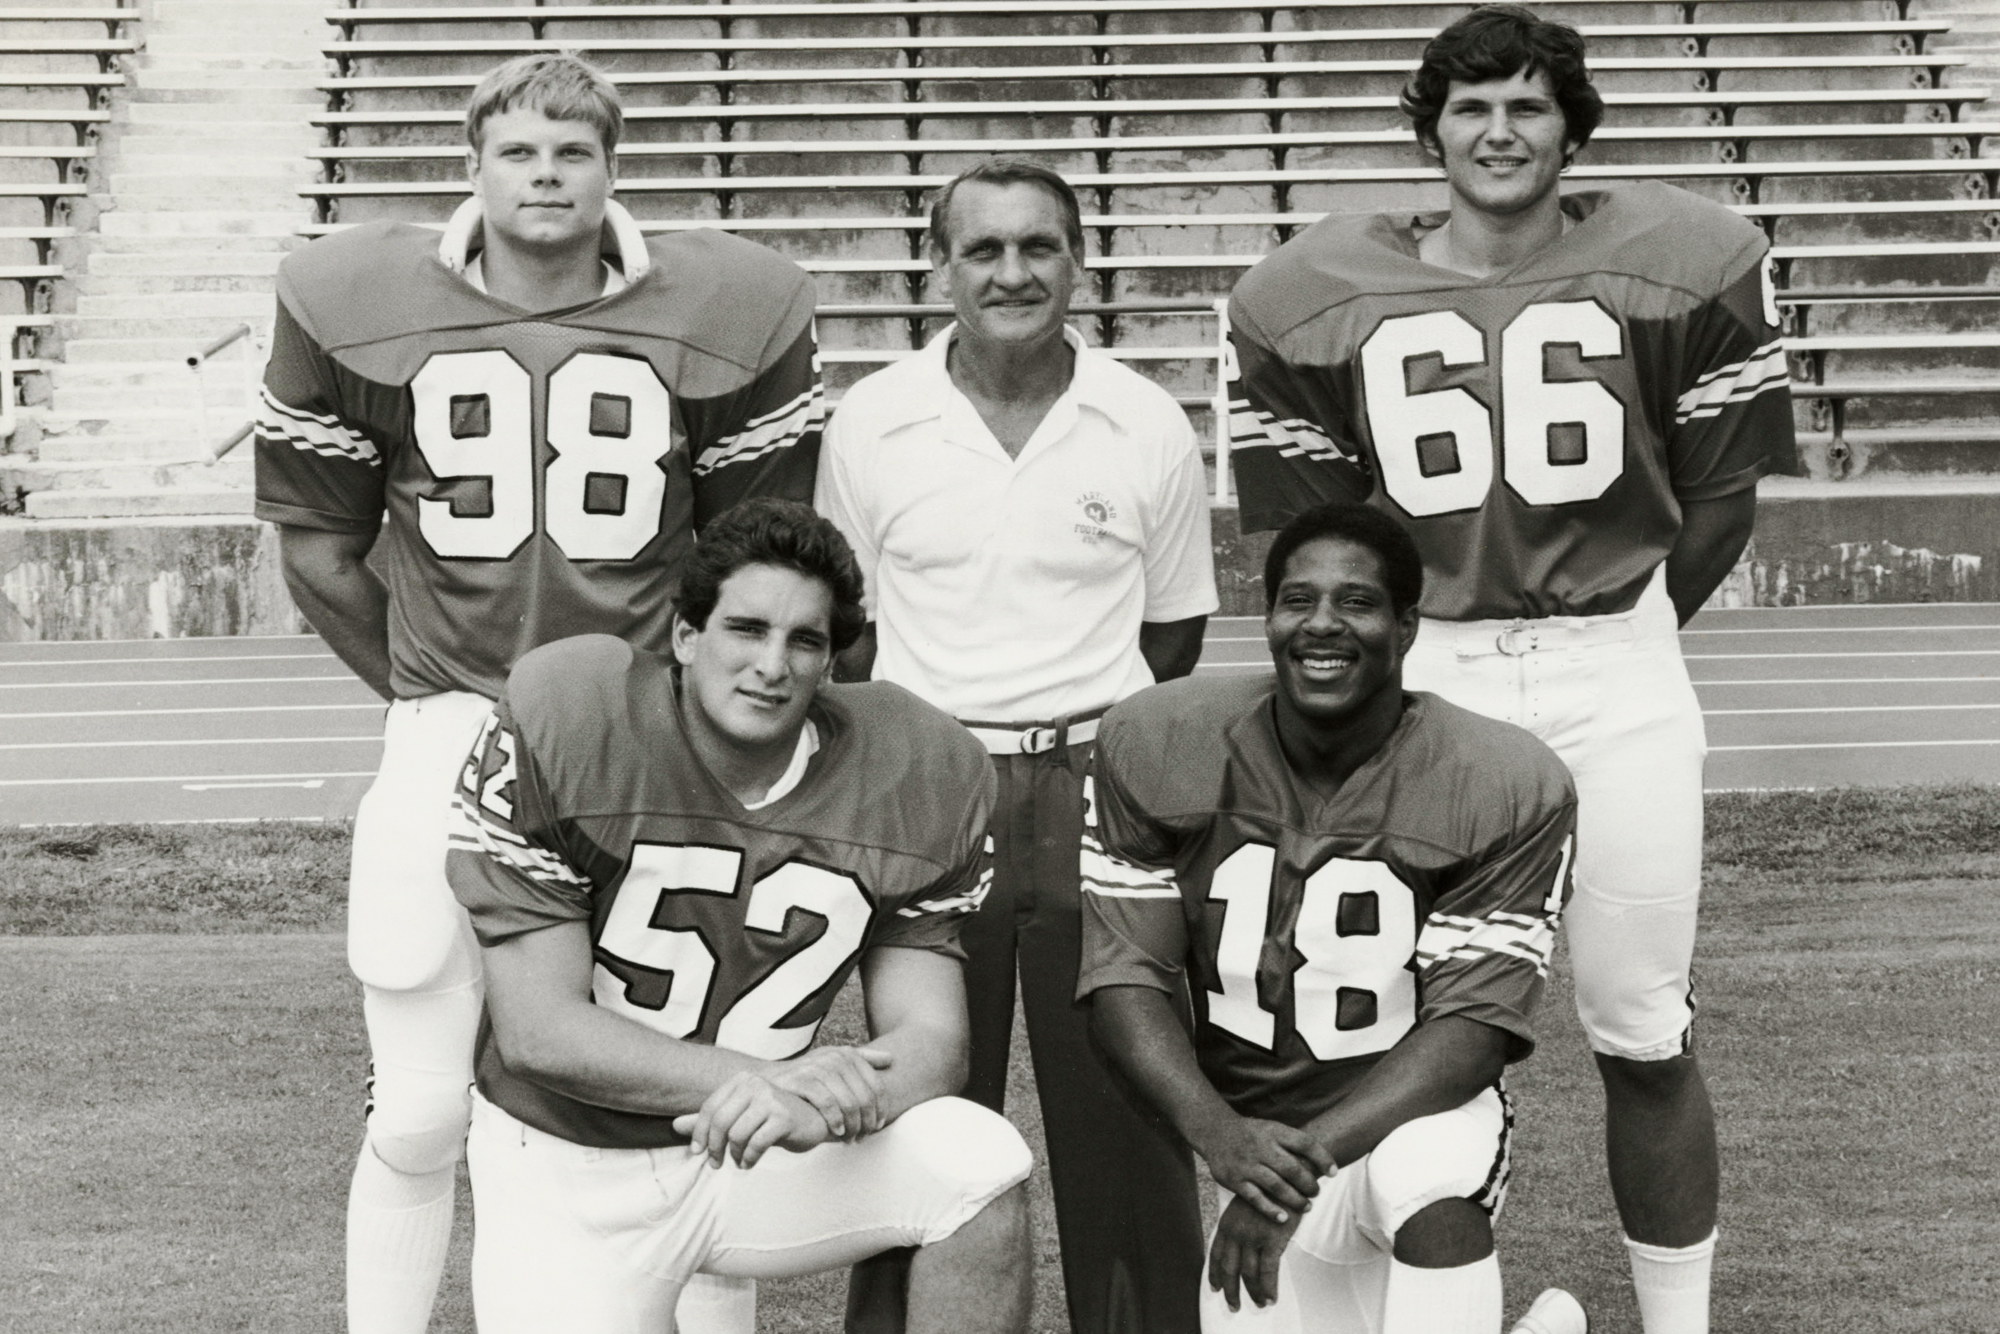 Maryland head coach Jerry Claiborne poses with Maryland football players Mark Duda (#98), Vince Tomasetti (#52), Charlie Wysocki (#18), and Ron Solt (#66).